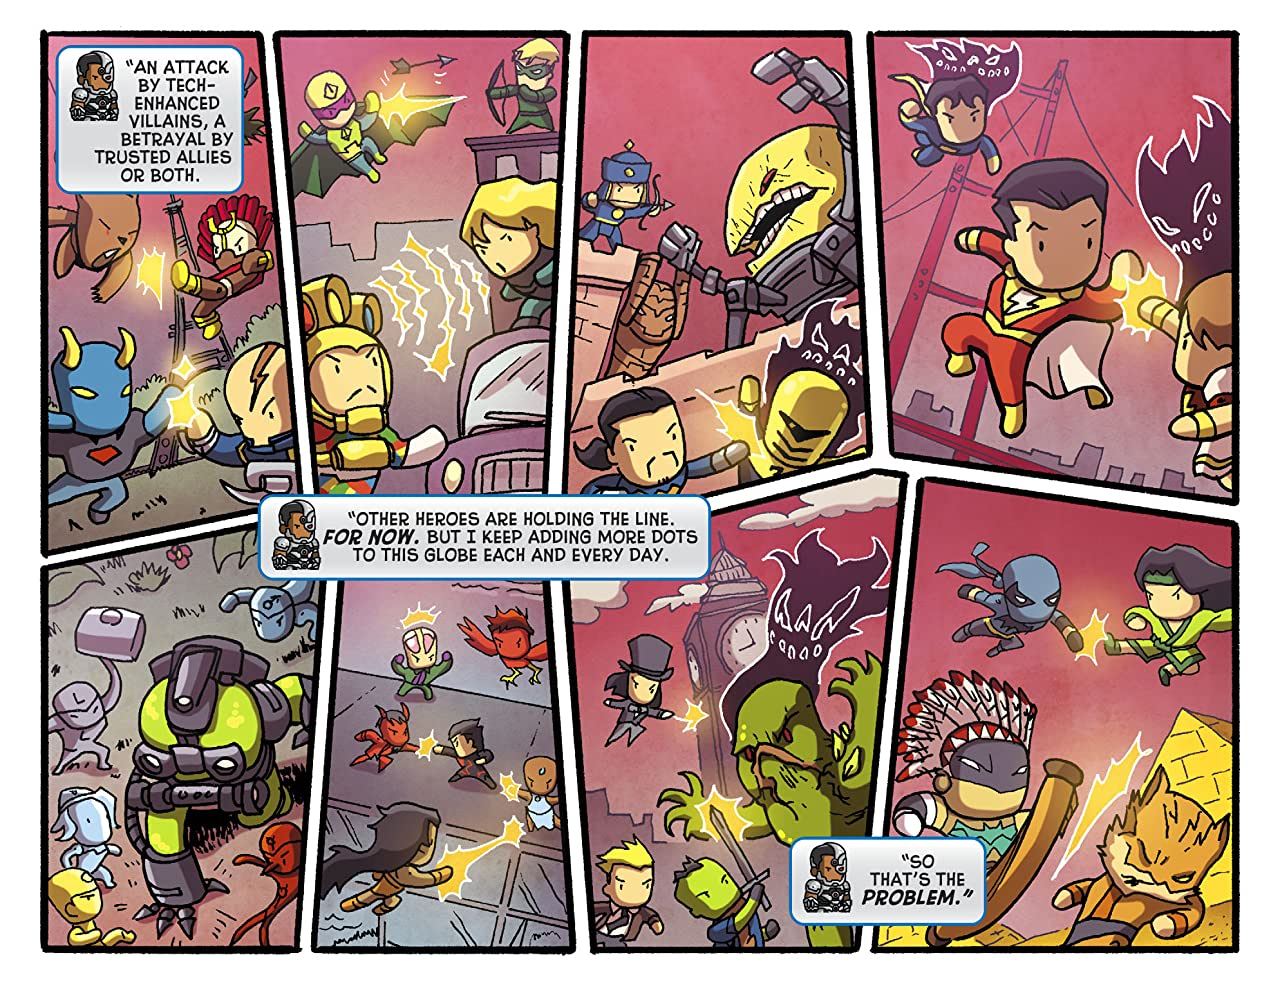 Scribblenauts Unmasked: A Crisis of Imagination #5